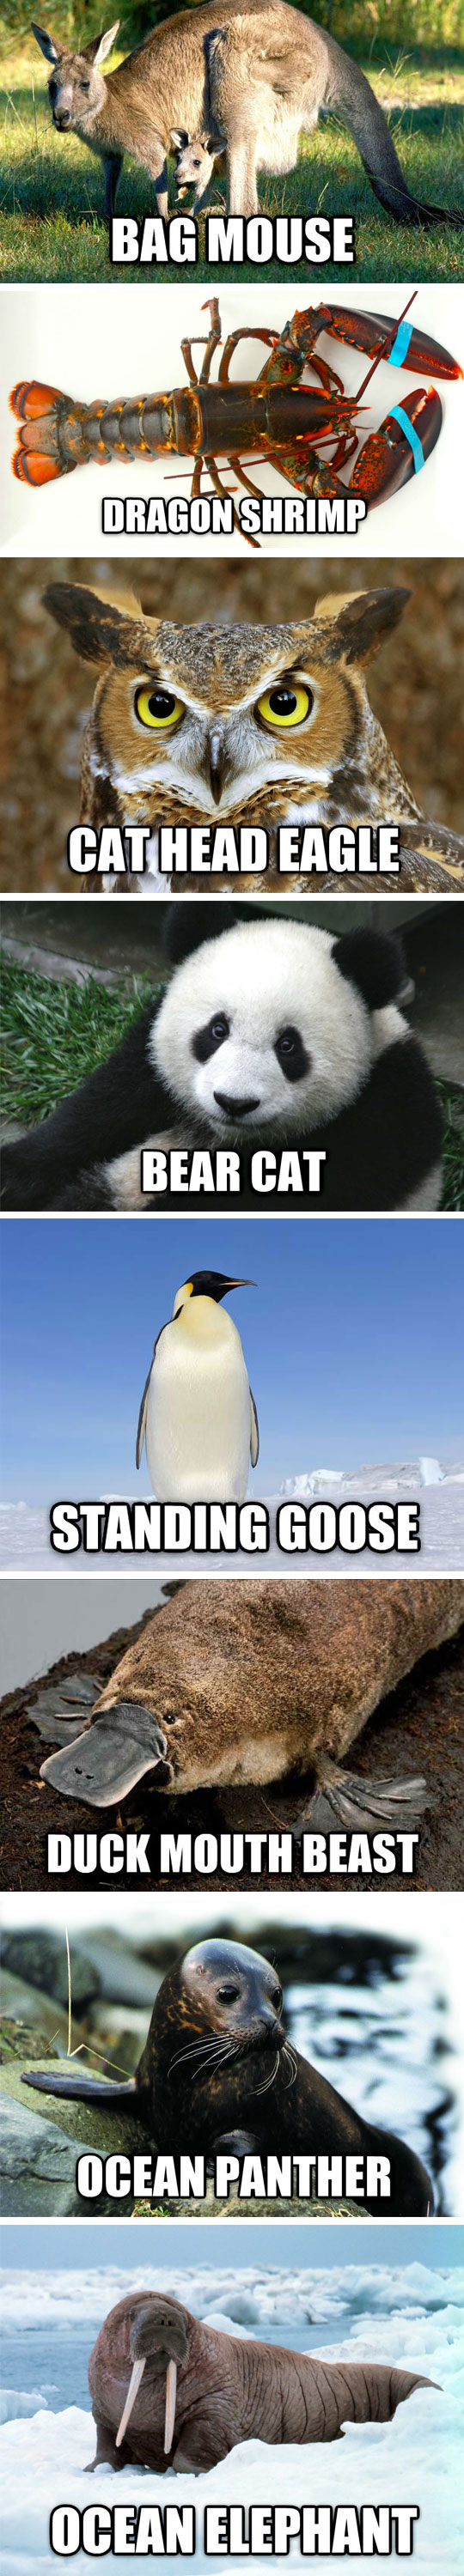 funny-chinese-animal-words-weird